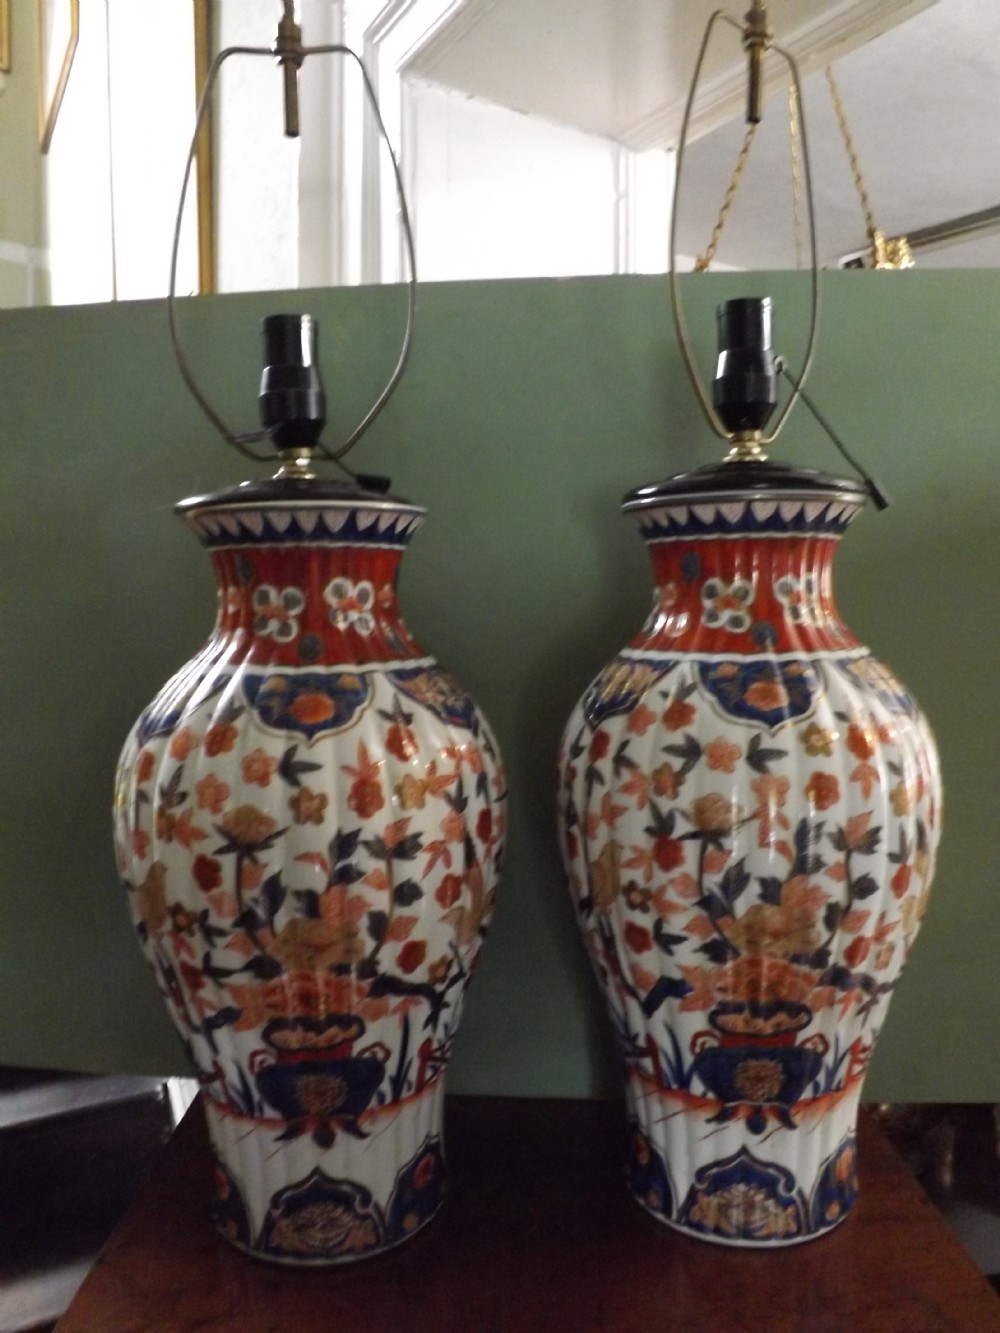 pair late c19th japanese imari porcelain vases now fitted with lamp conversions